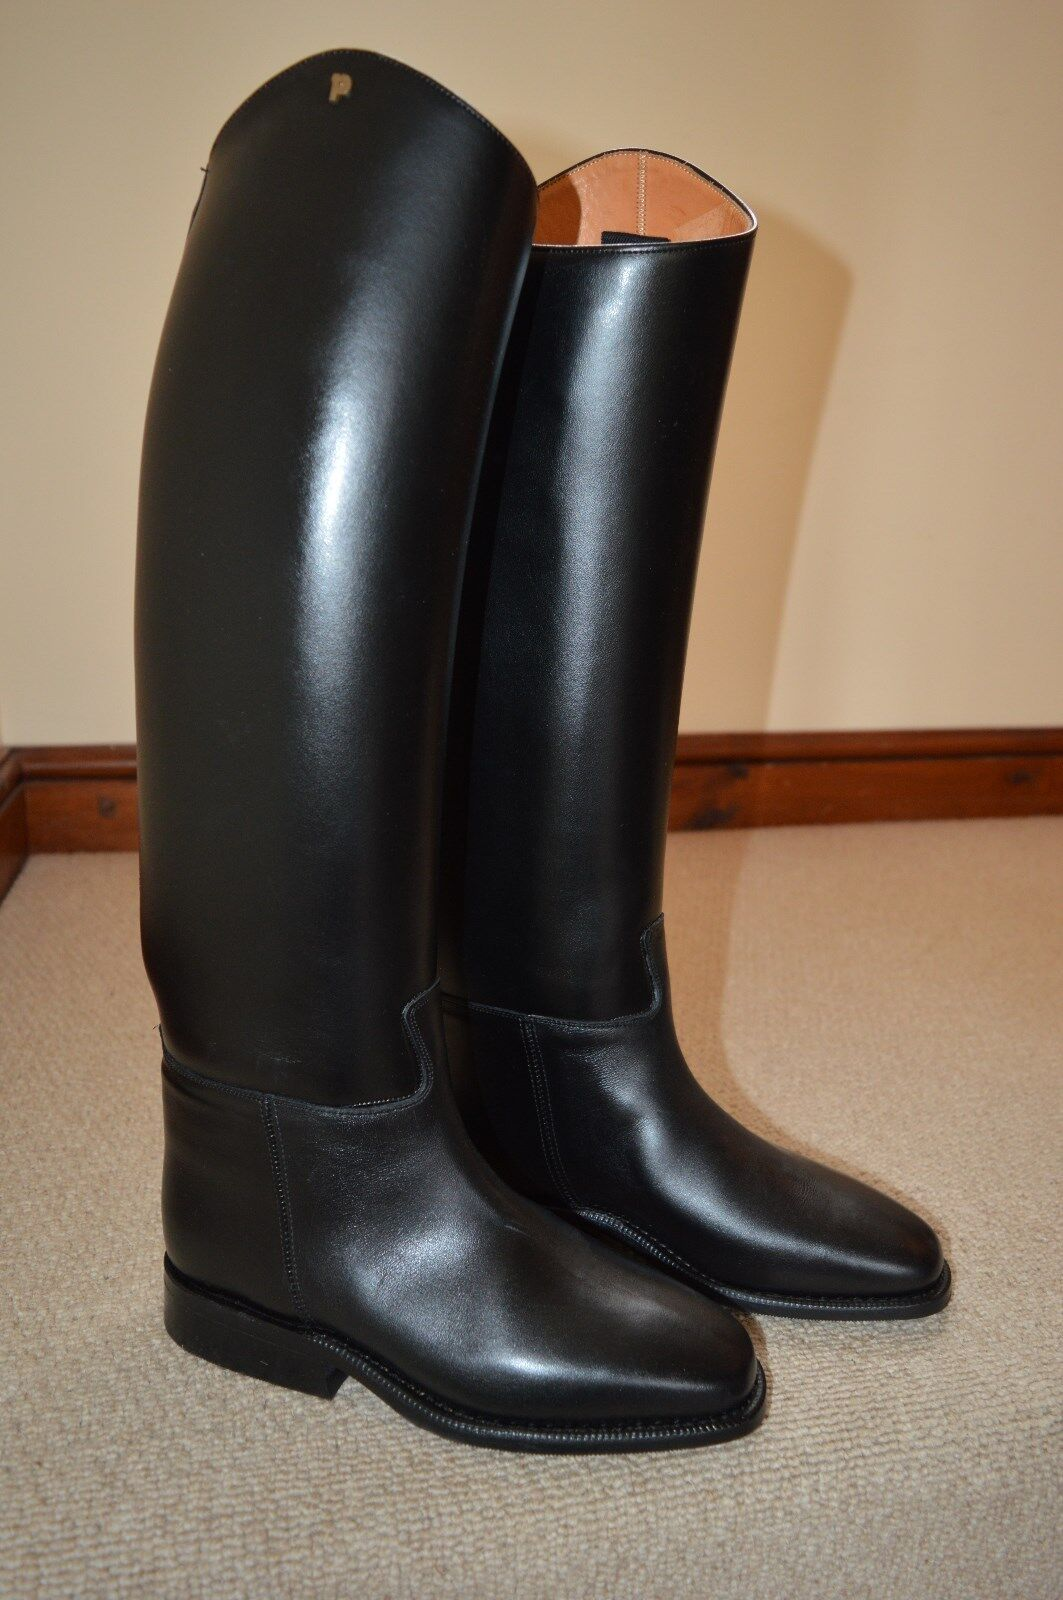 Petrie Top Quality Full Boots The Windsor Size 5